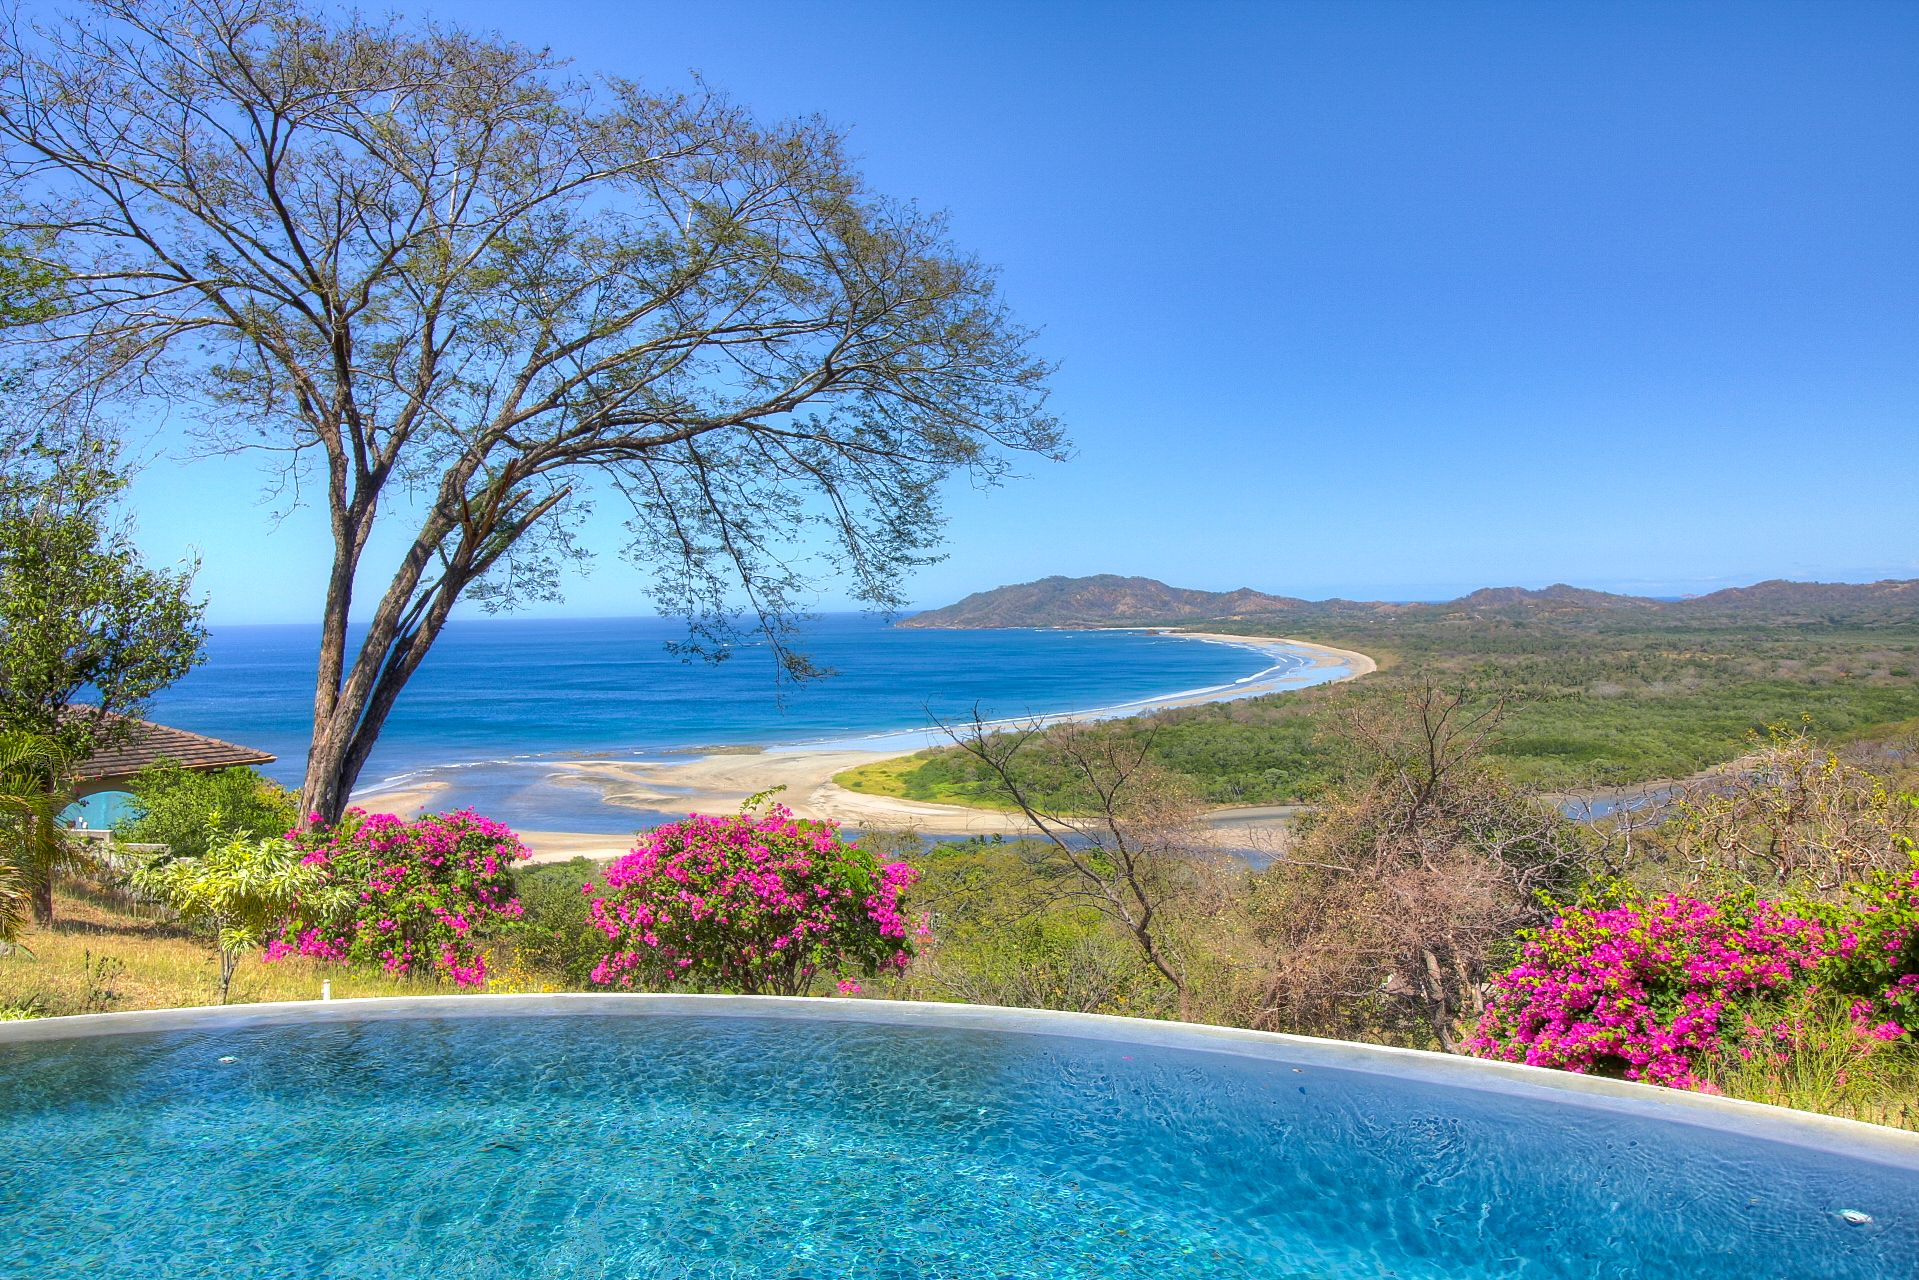 This is you dream vacation in Tamarindo